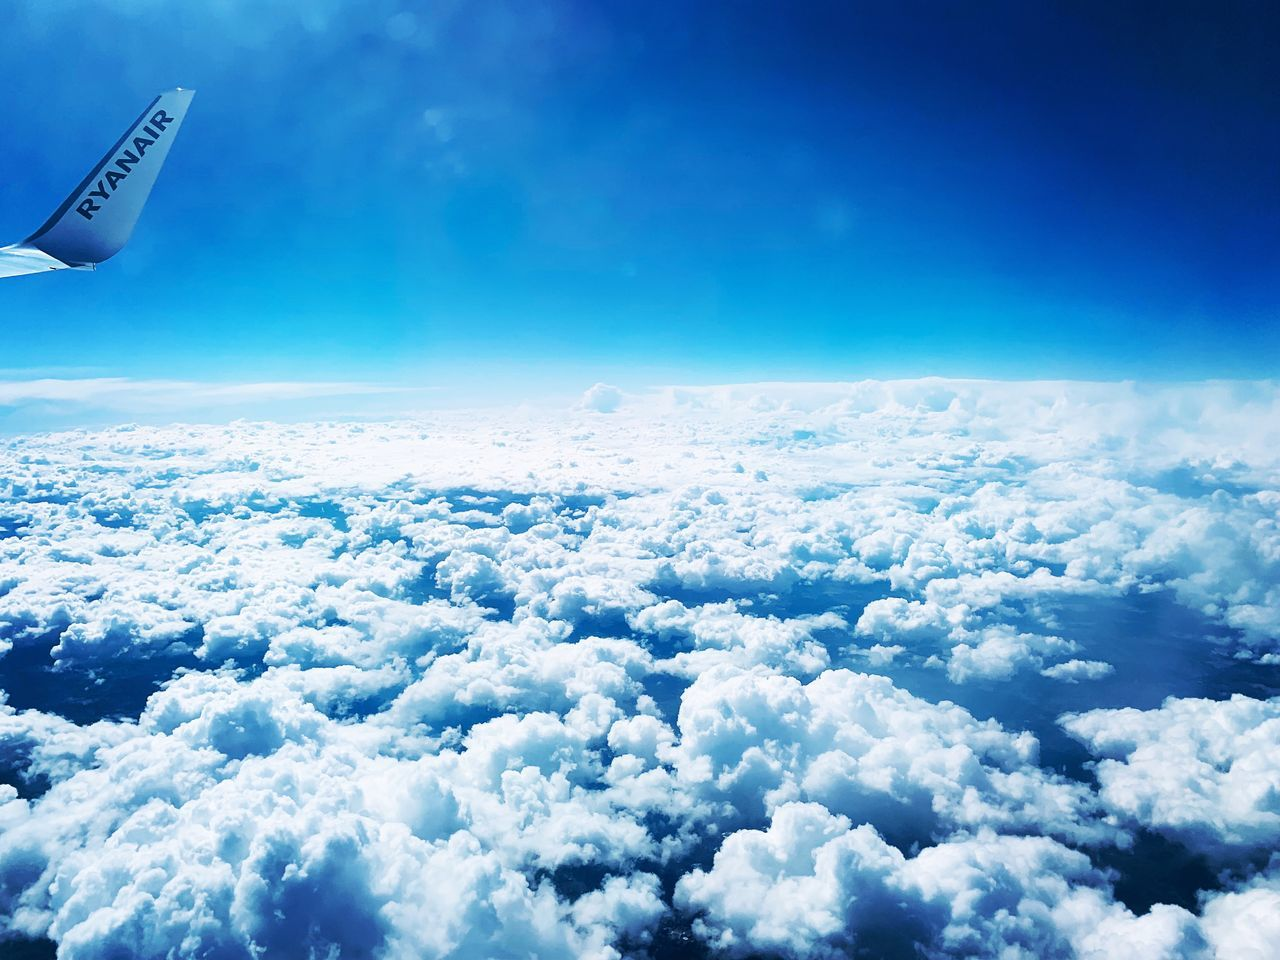 cloud - sky, sky, scenics - nature, blue, beauty in nature, nature, mid-air, flying, cloudscape, no people, air vehicle, airplane, day, tranquility, tranquil scene, aerial view, mode of transportation, idyllic, outdoors, transportation, above, softness, meteorology